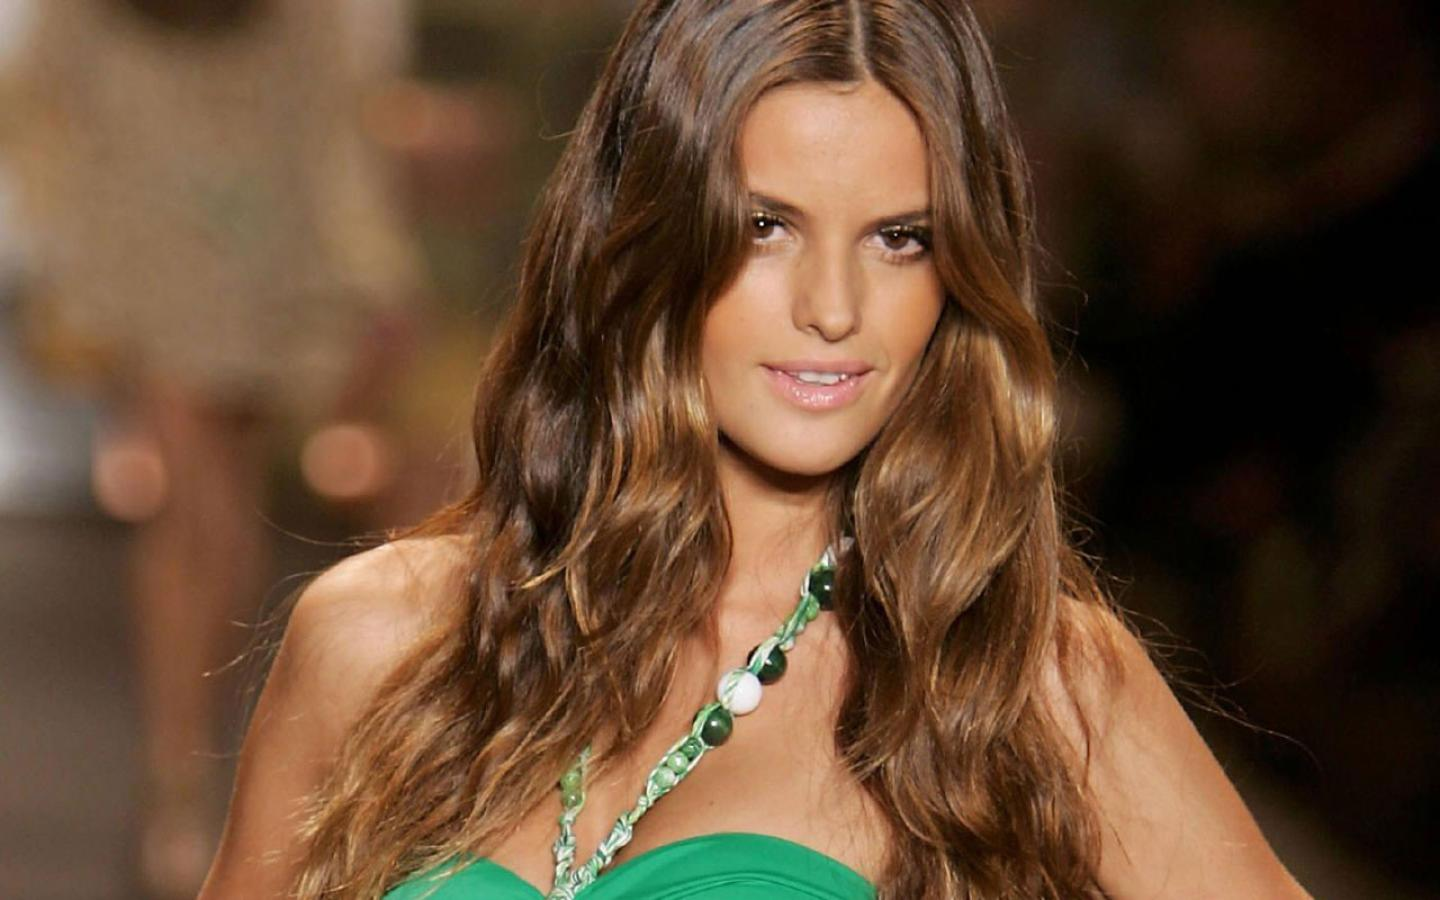 Best Looking Woman Izabel Goulart 1440x900 Wallpaper 2